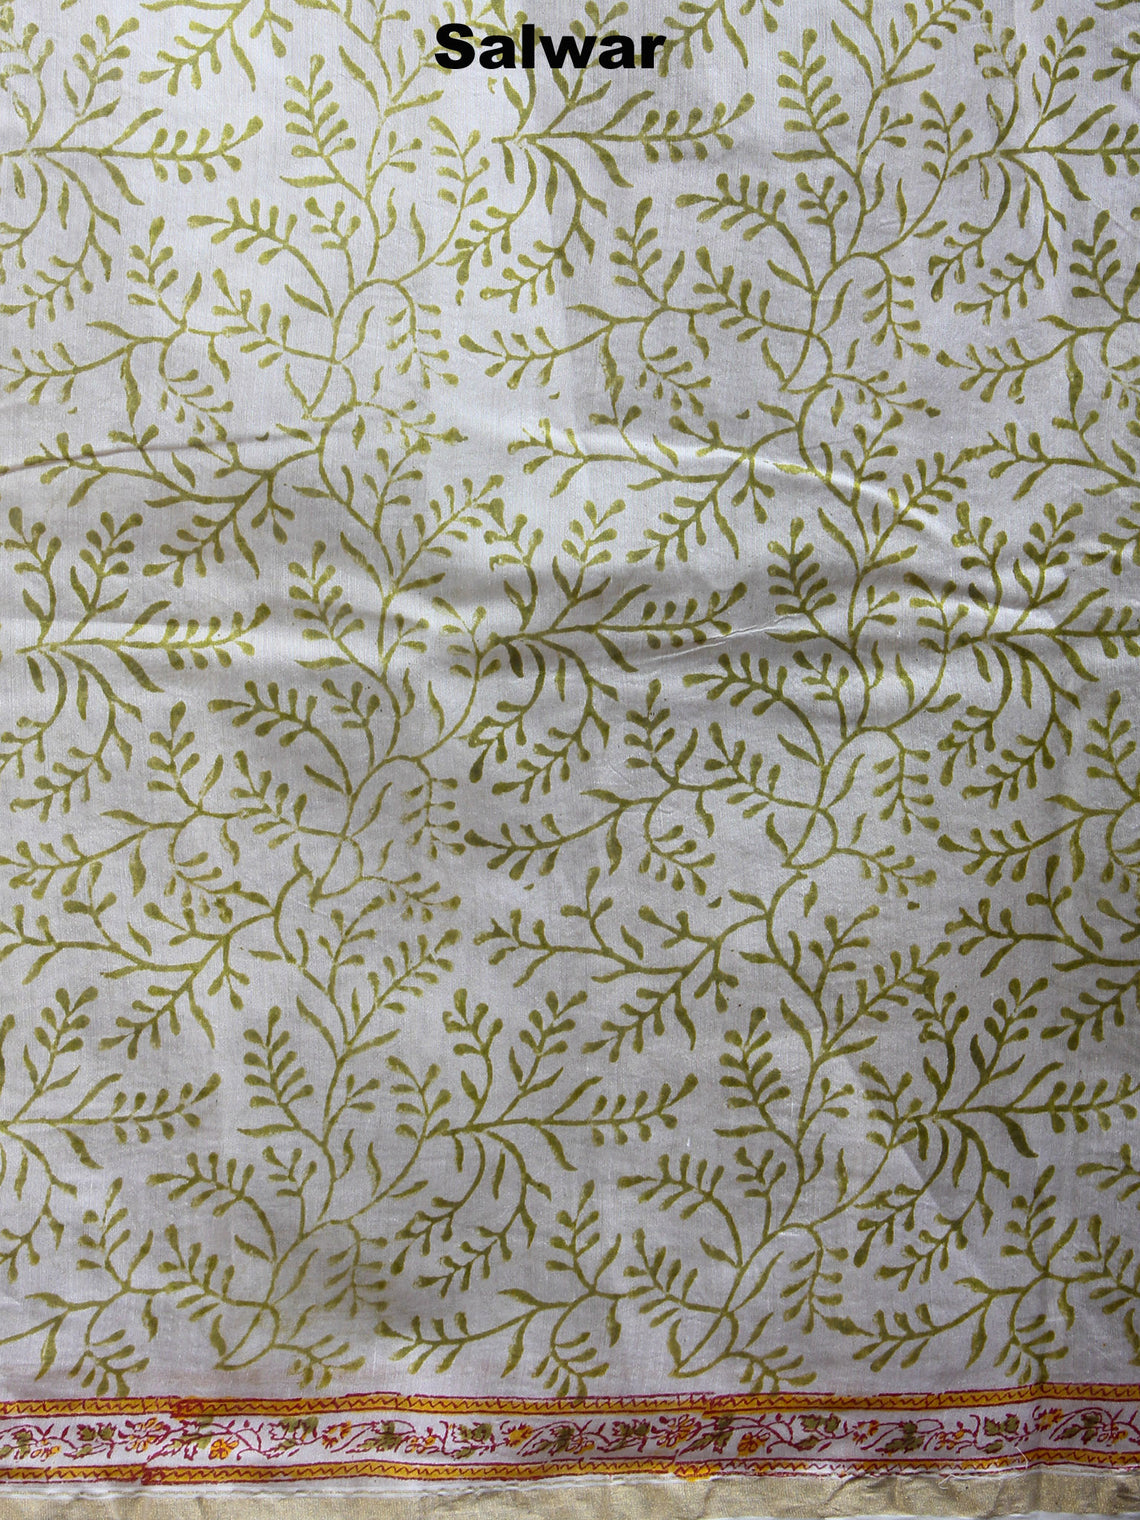 Ivory Yellow Green Hand Block Printed Chanderi Kurta-Salwar Fabric With Chanderi Dupatta - S1628033